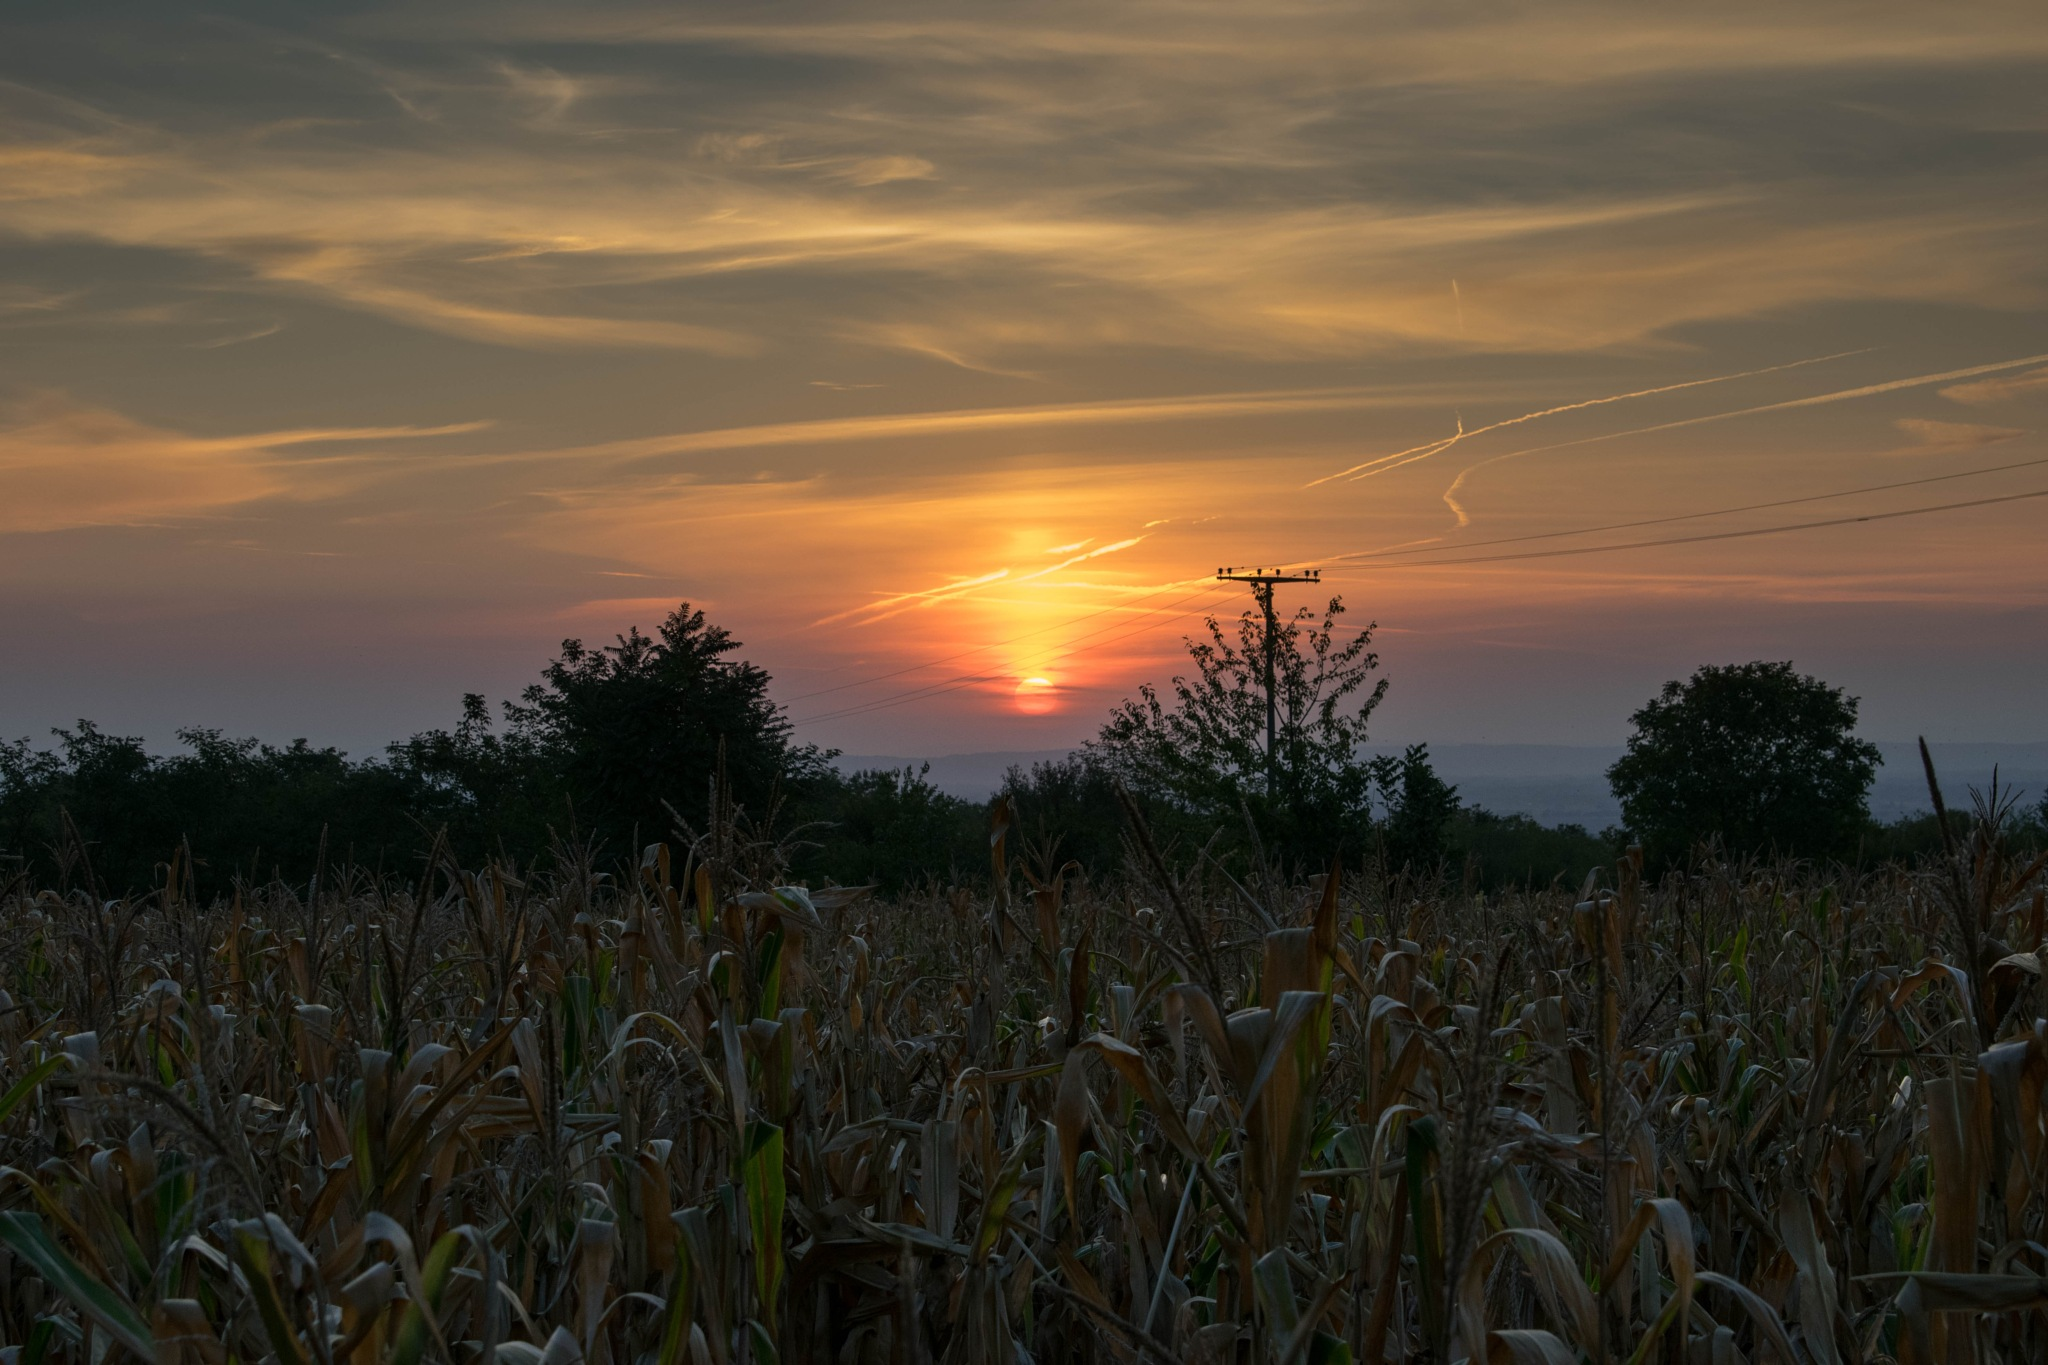 Sunrise over the cornfield by thecwazy